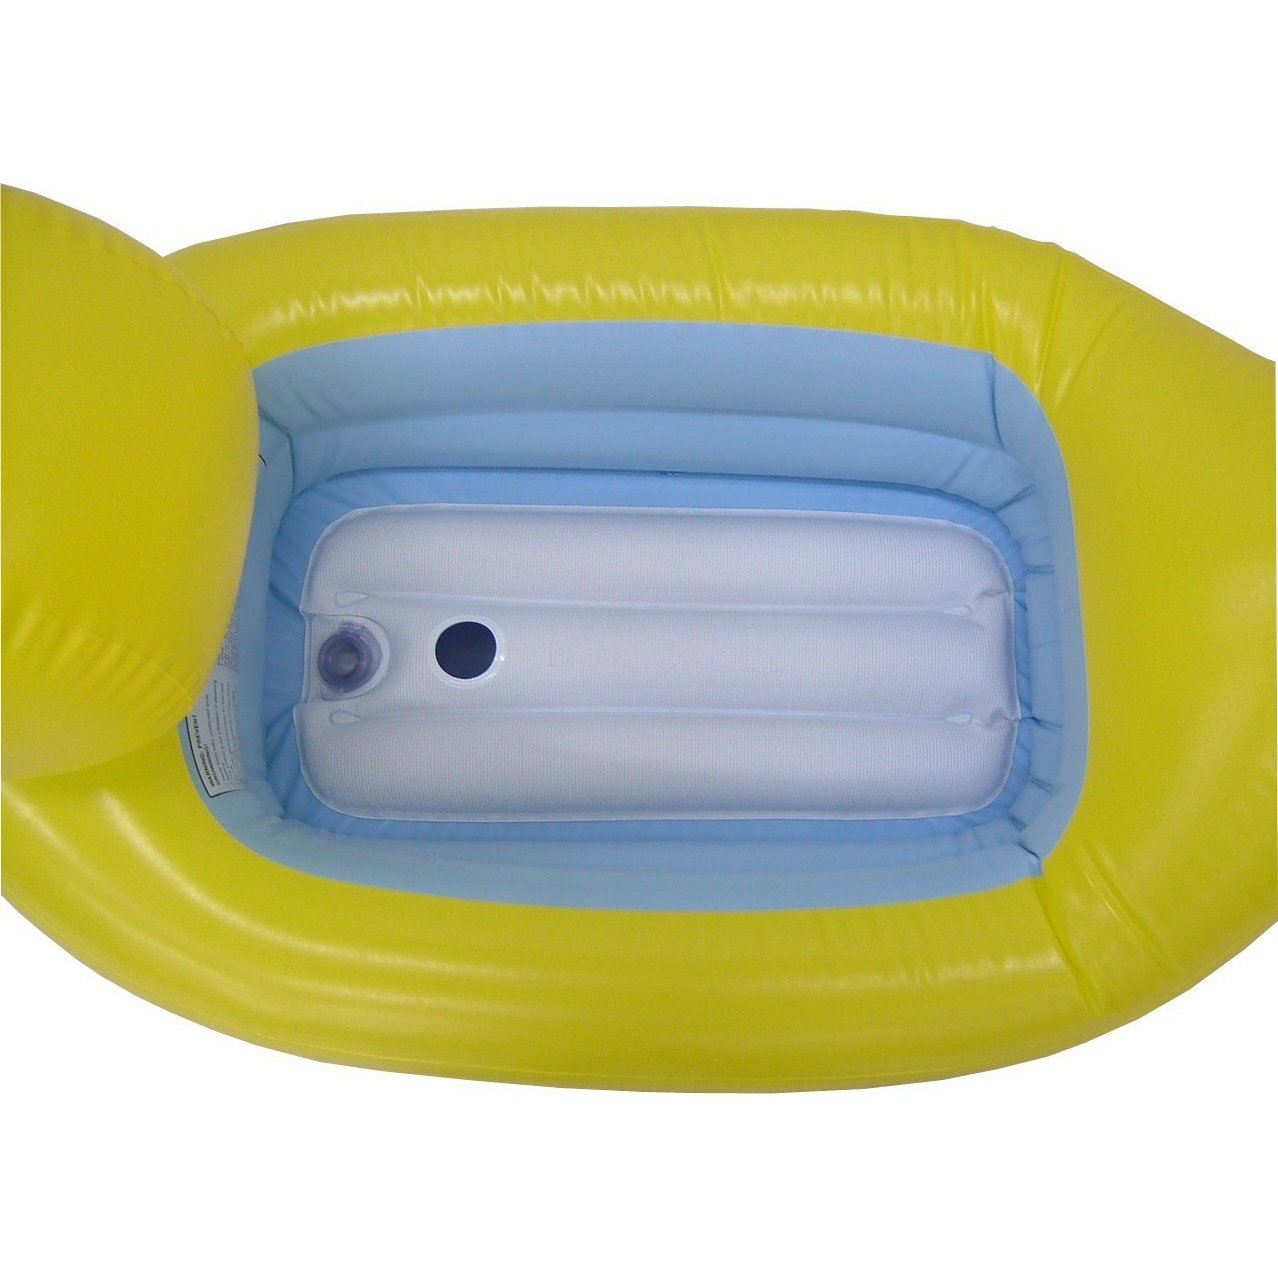 Vee Baby Shop: Munchkin White Hot Inflatable Duck Tub